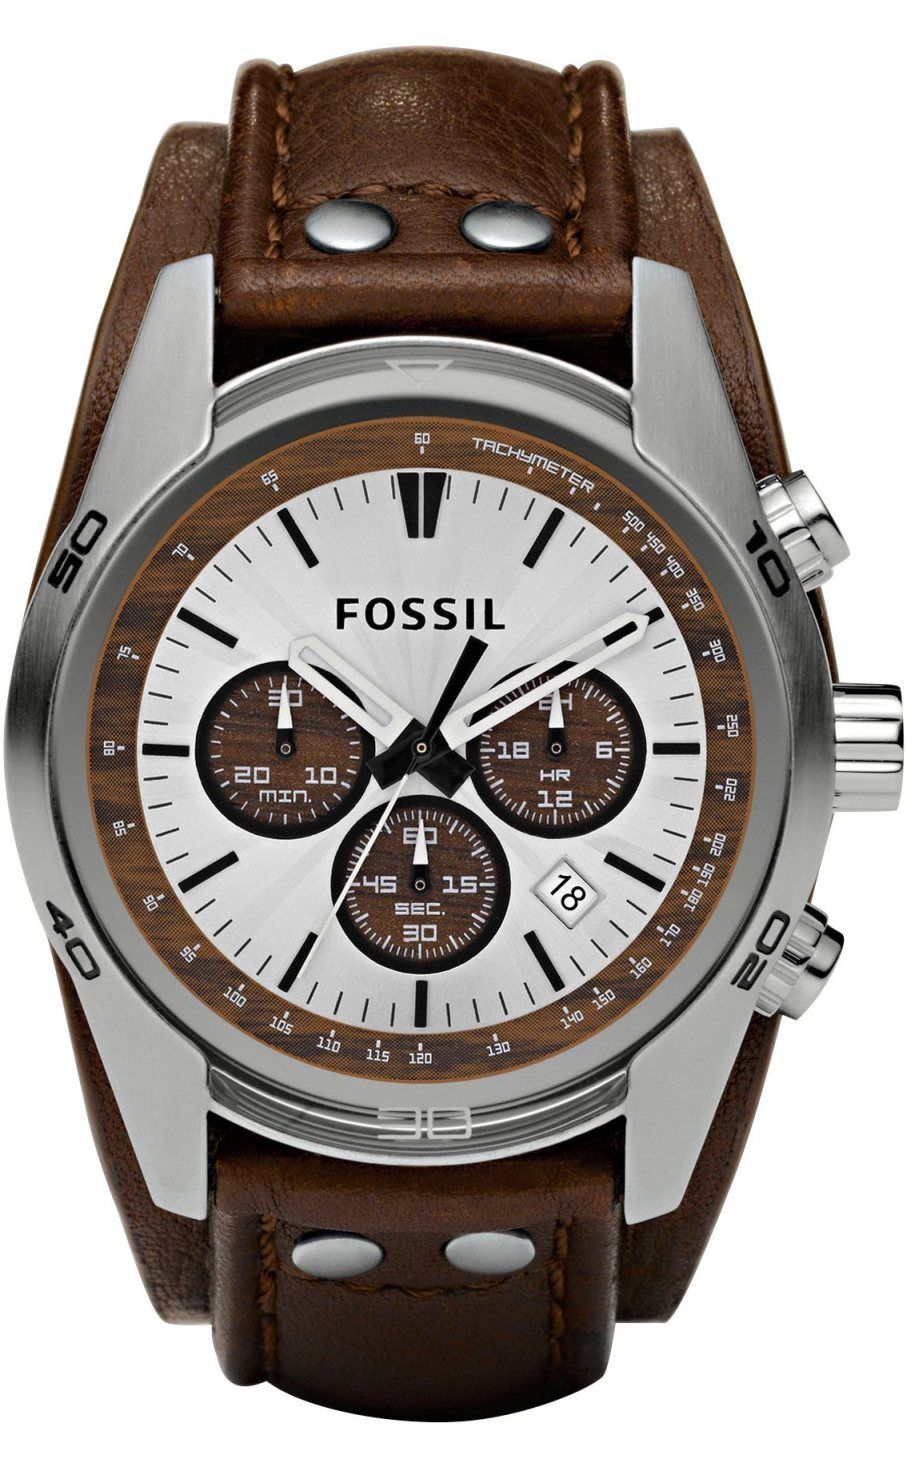 Fossil Men s CH2565 Cuff Chronograph Tan Leather Watch    91.00   Fossil  Watch Men Lederen Horloges c5f1626a6d68